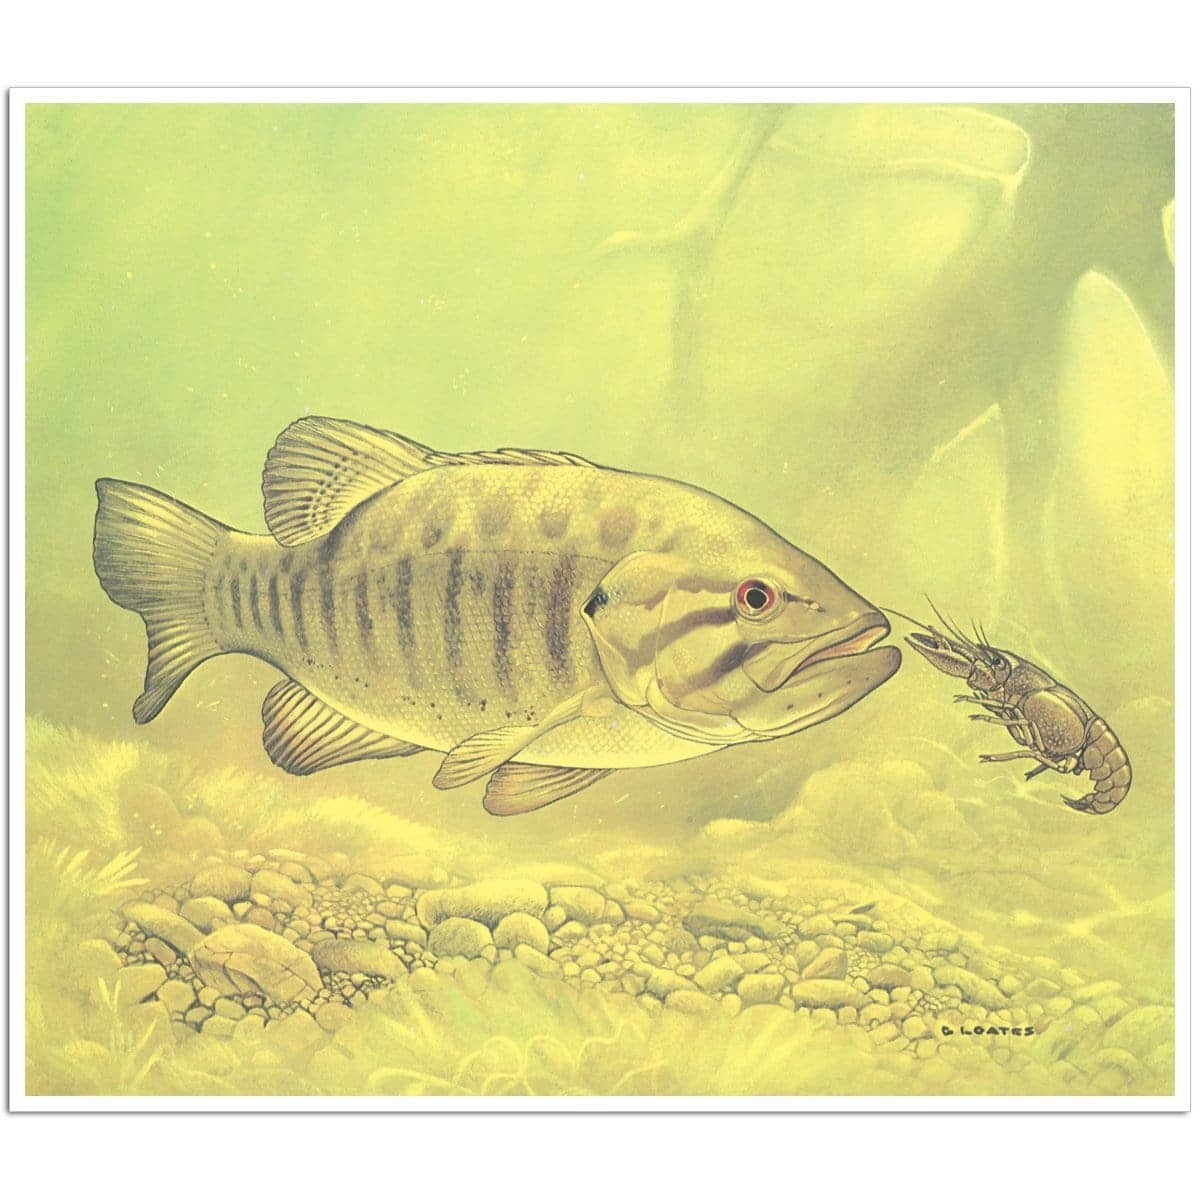 Small Mouth Bass Pursuing Crayfish - Art Print by Glen Loates from the Glen Loates Store